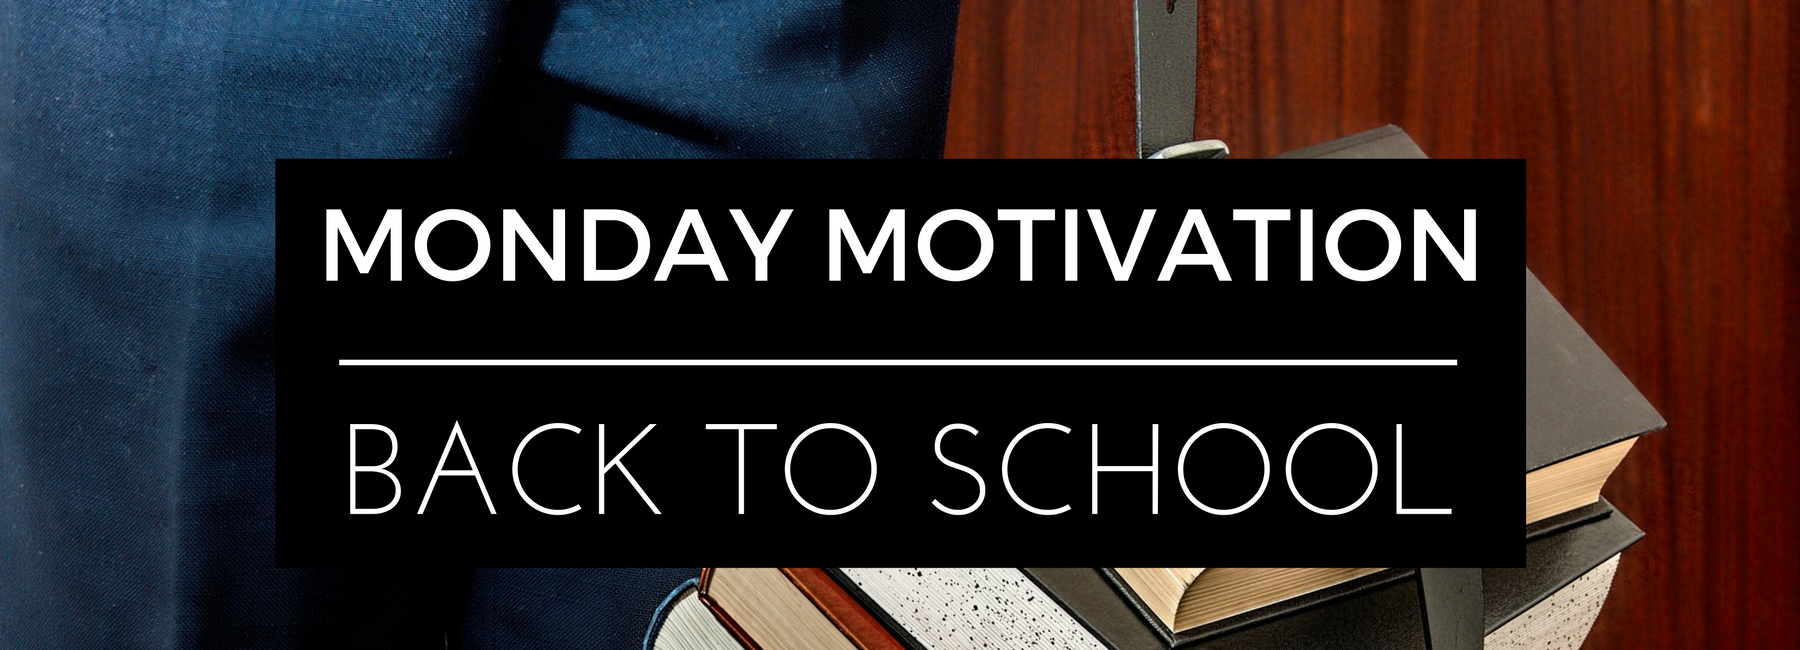 Monday motivation back to school banner | the lonely tribalist | moose and michelle